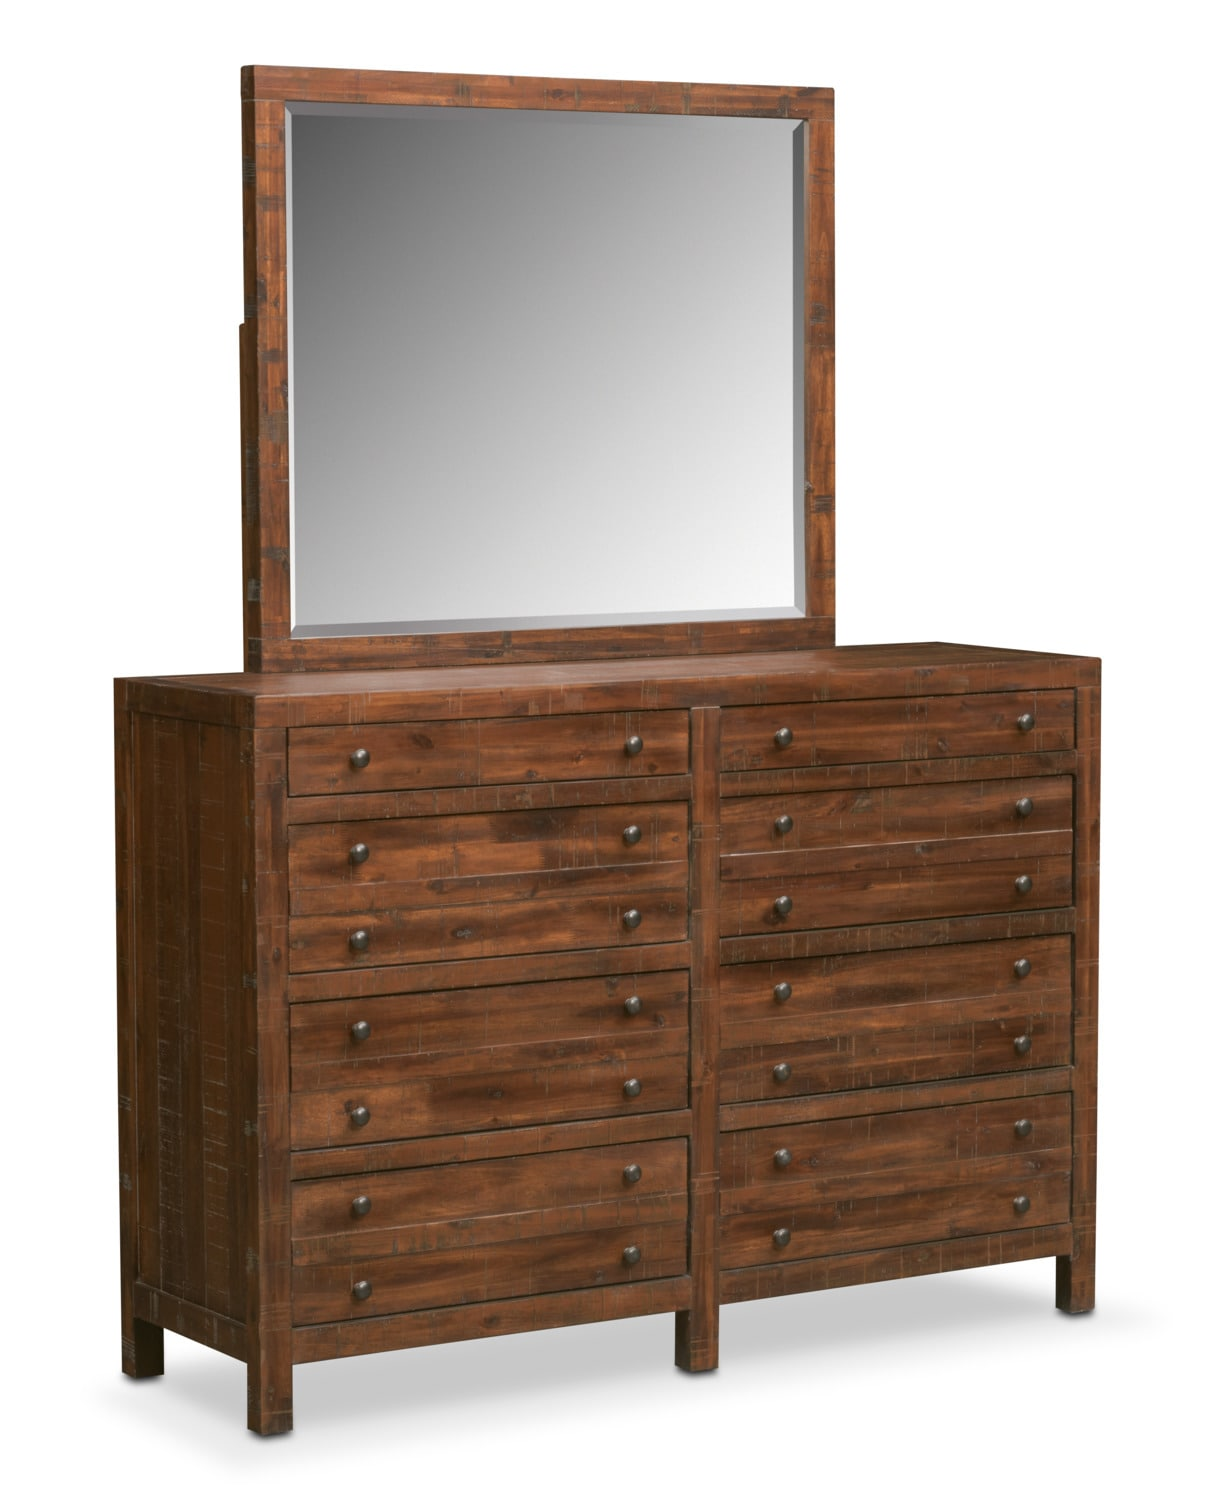 Ryder Dresser and Mirror - Mahogany